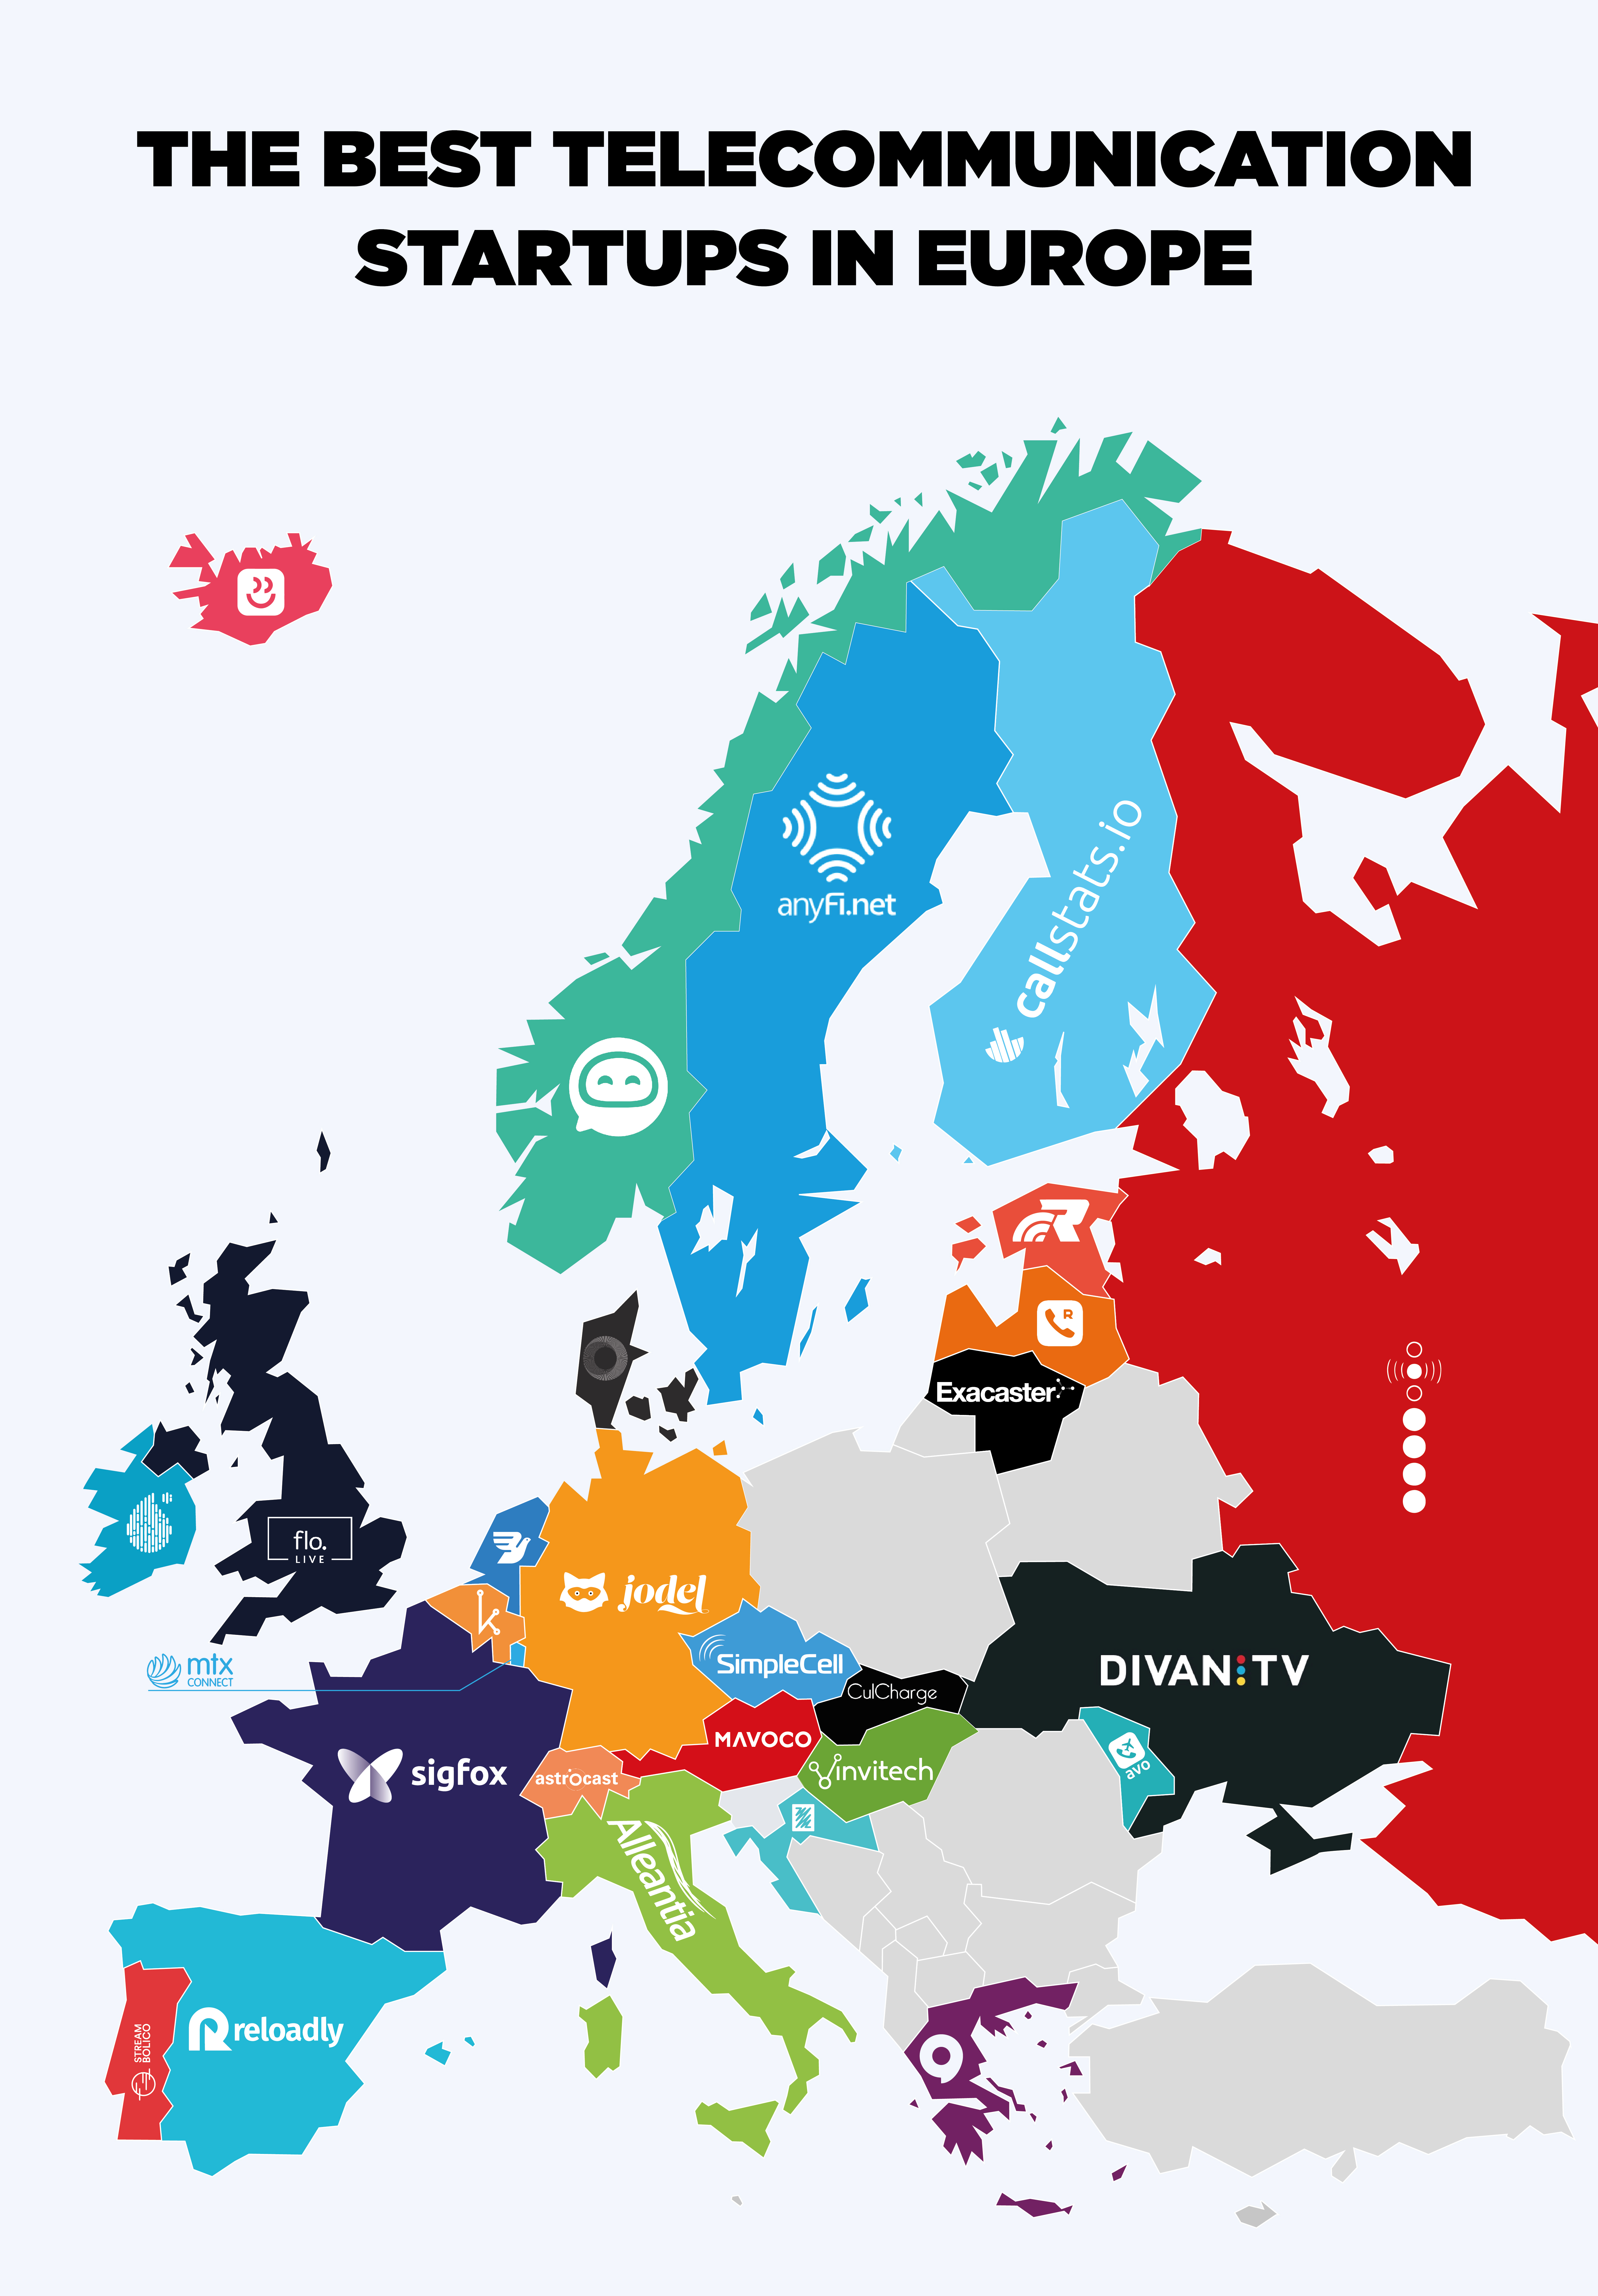 A colourful map of Europe with the logo of telecom startups